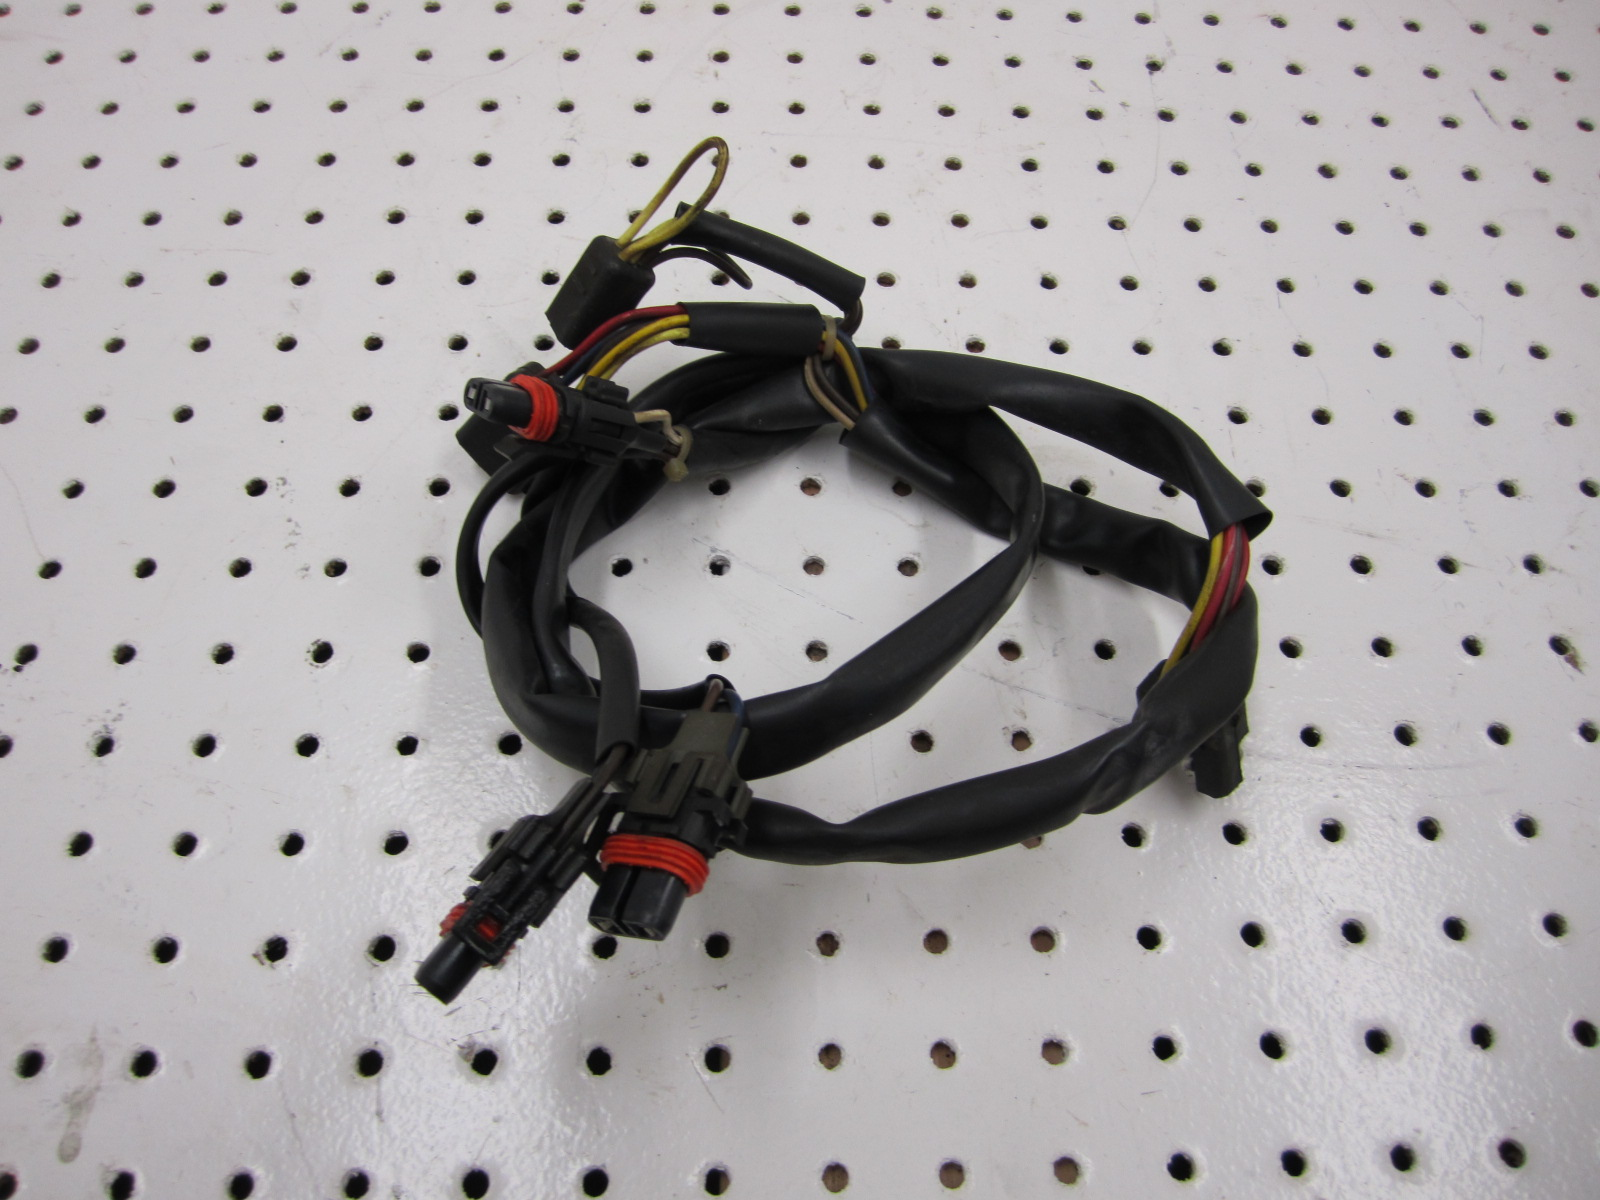 IMG_1535 2002 arctic cat zr 600 cce hood wire harness 0686 515 ebay 515 Grapple Skidder at crackthecode.co